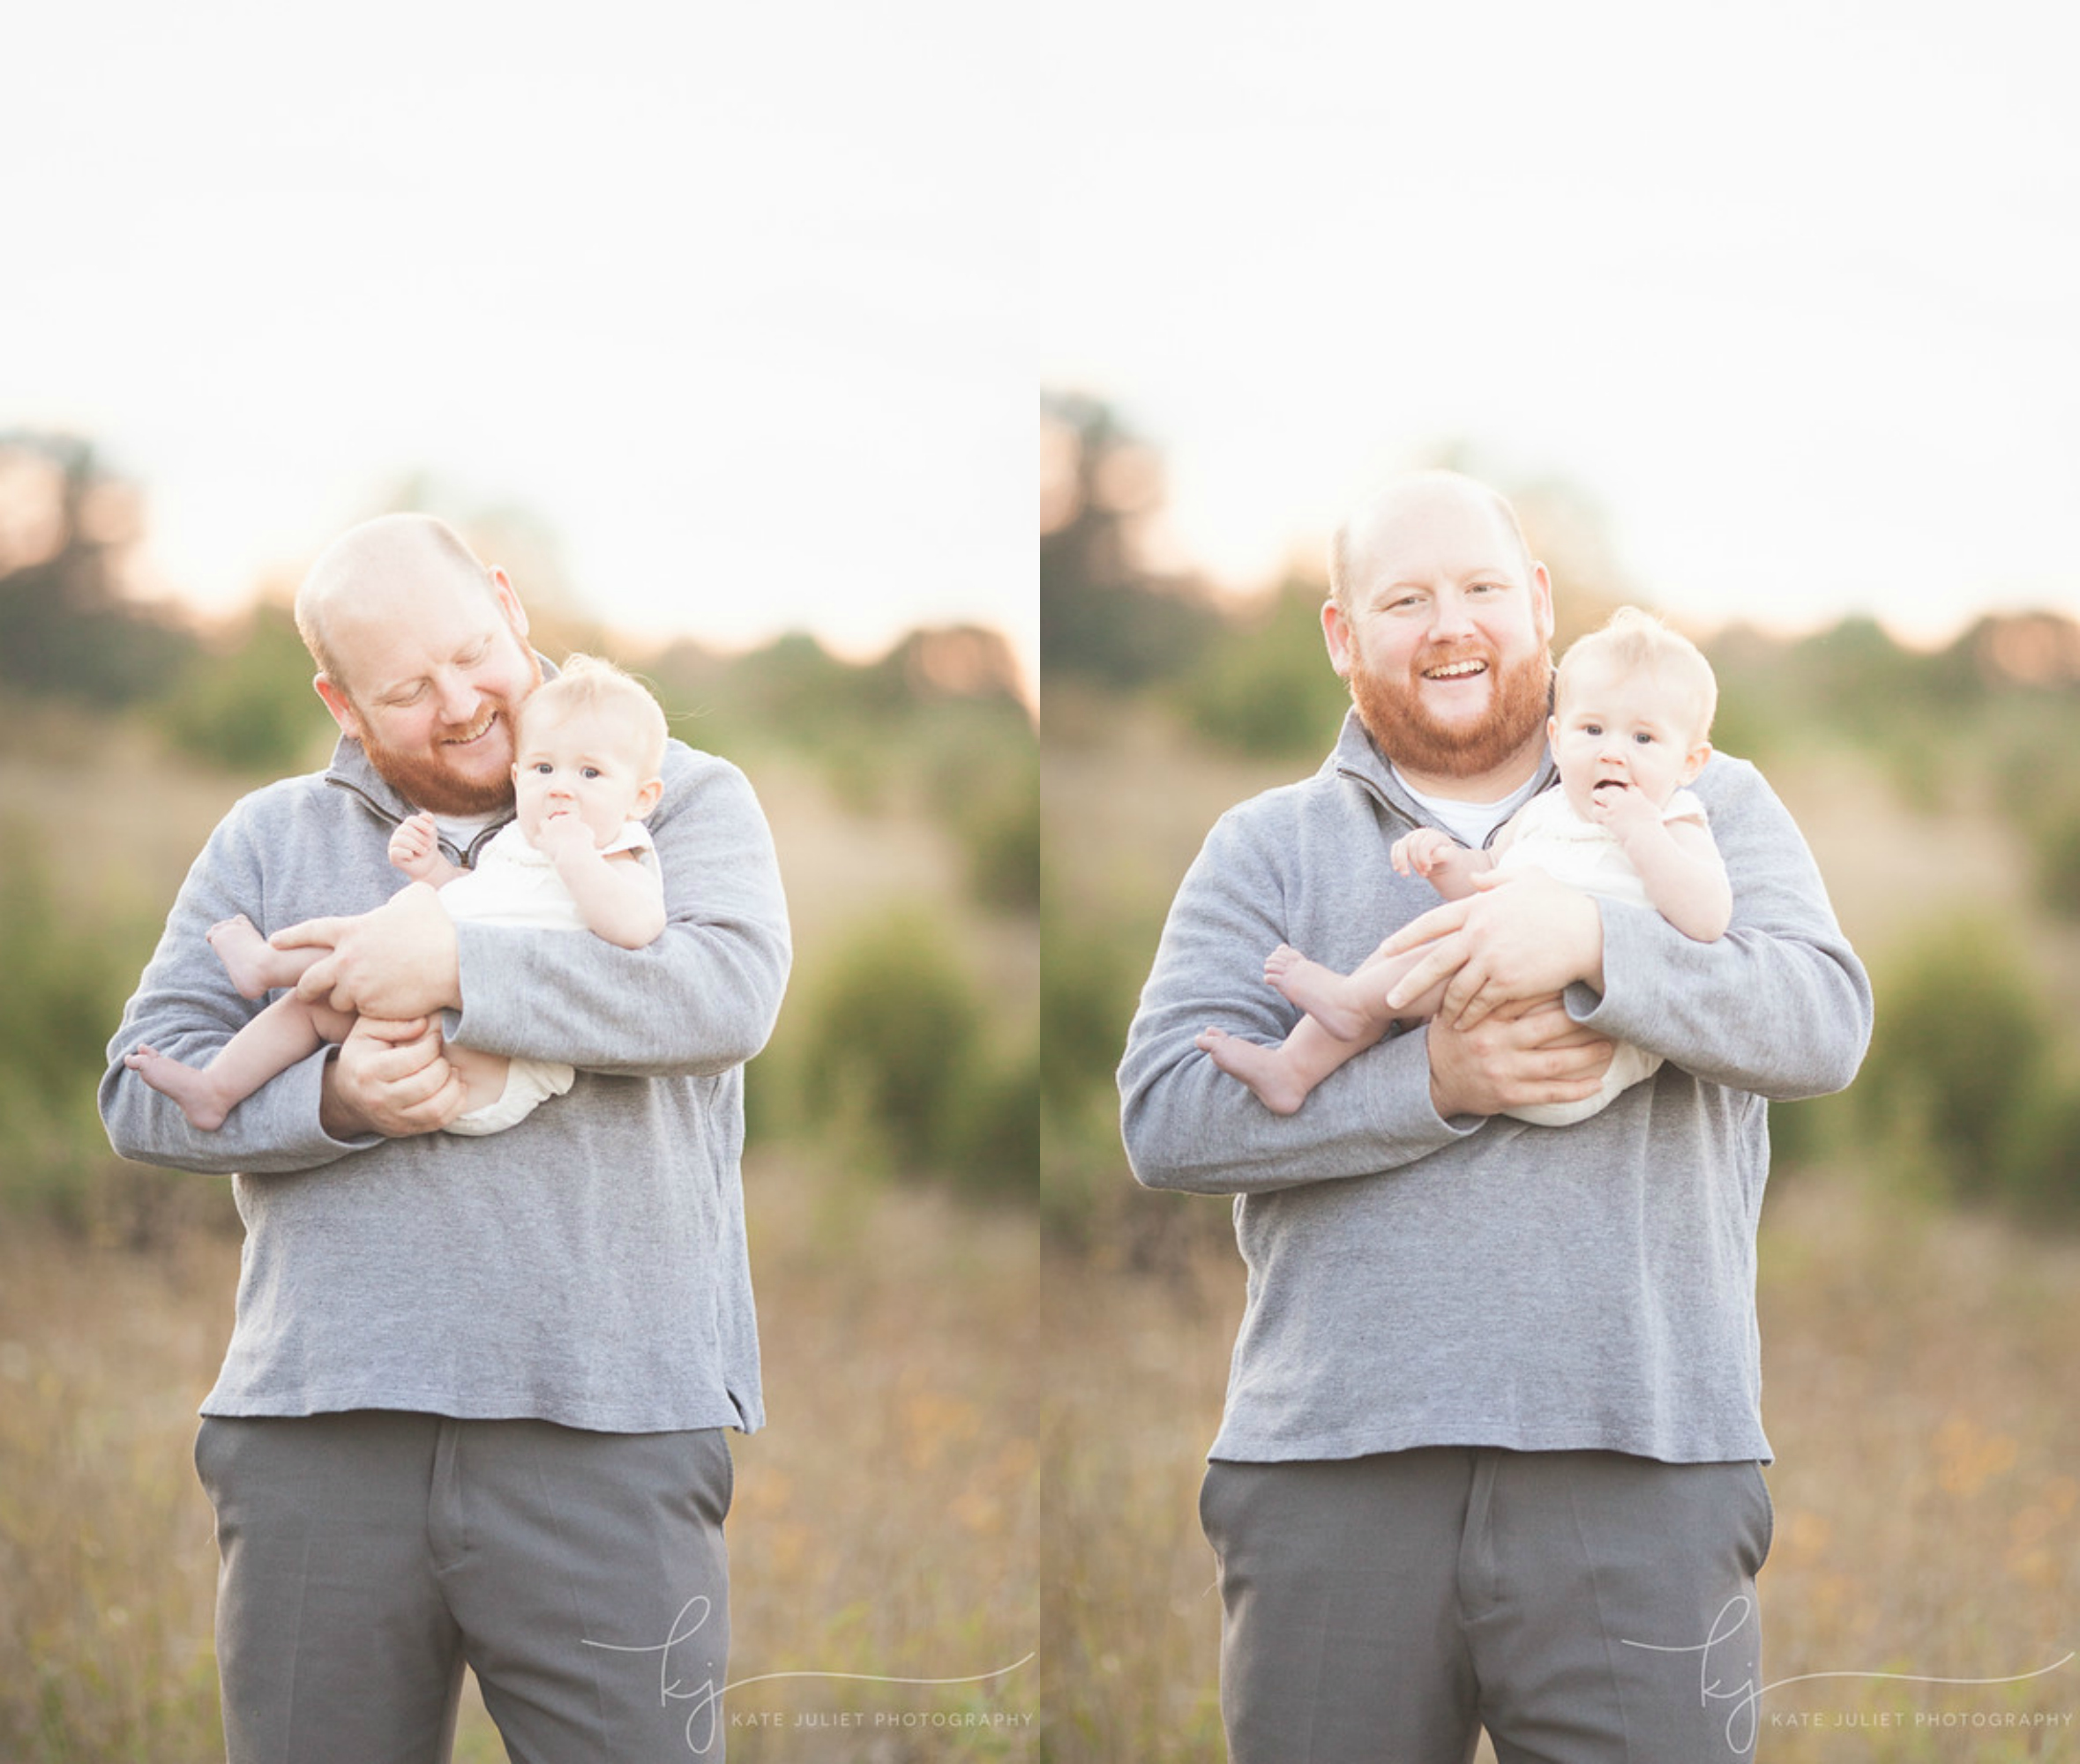 Fairfax VA Baby Photographer | Kate Juliet Photography